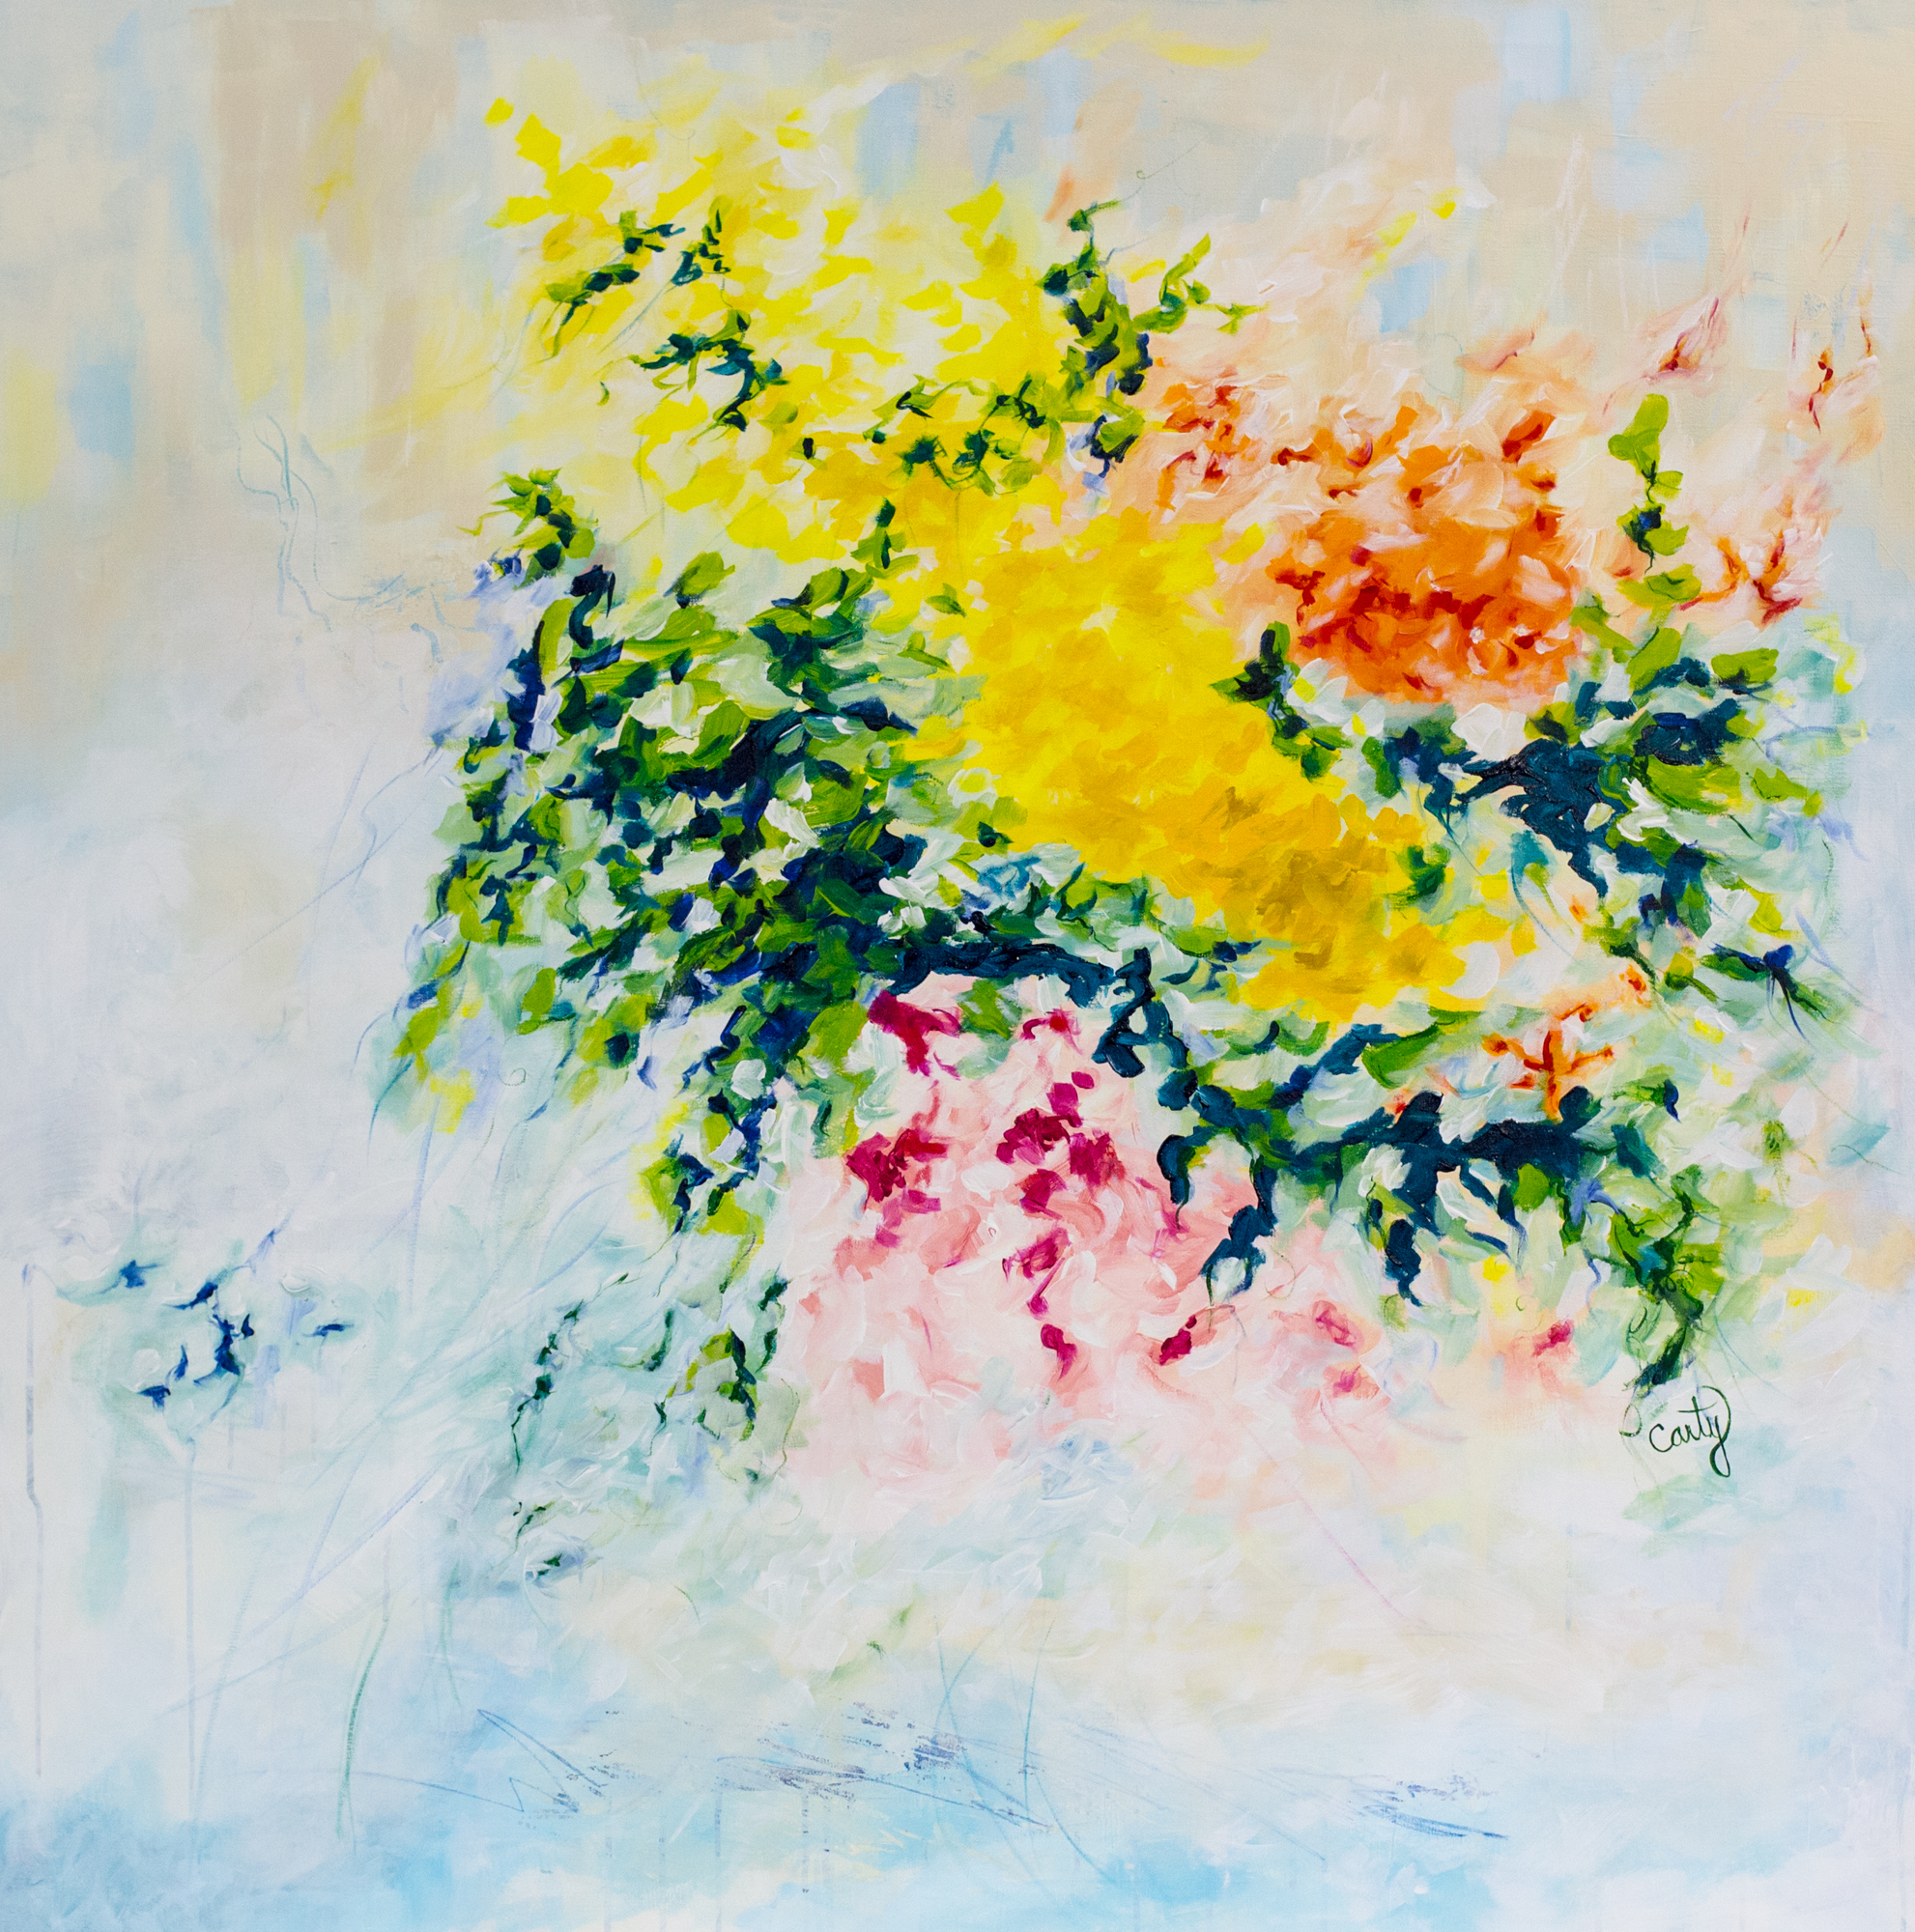 Cheerful Vibrant Floral Abstract Painting by Boston-based artist Megan Carty